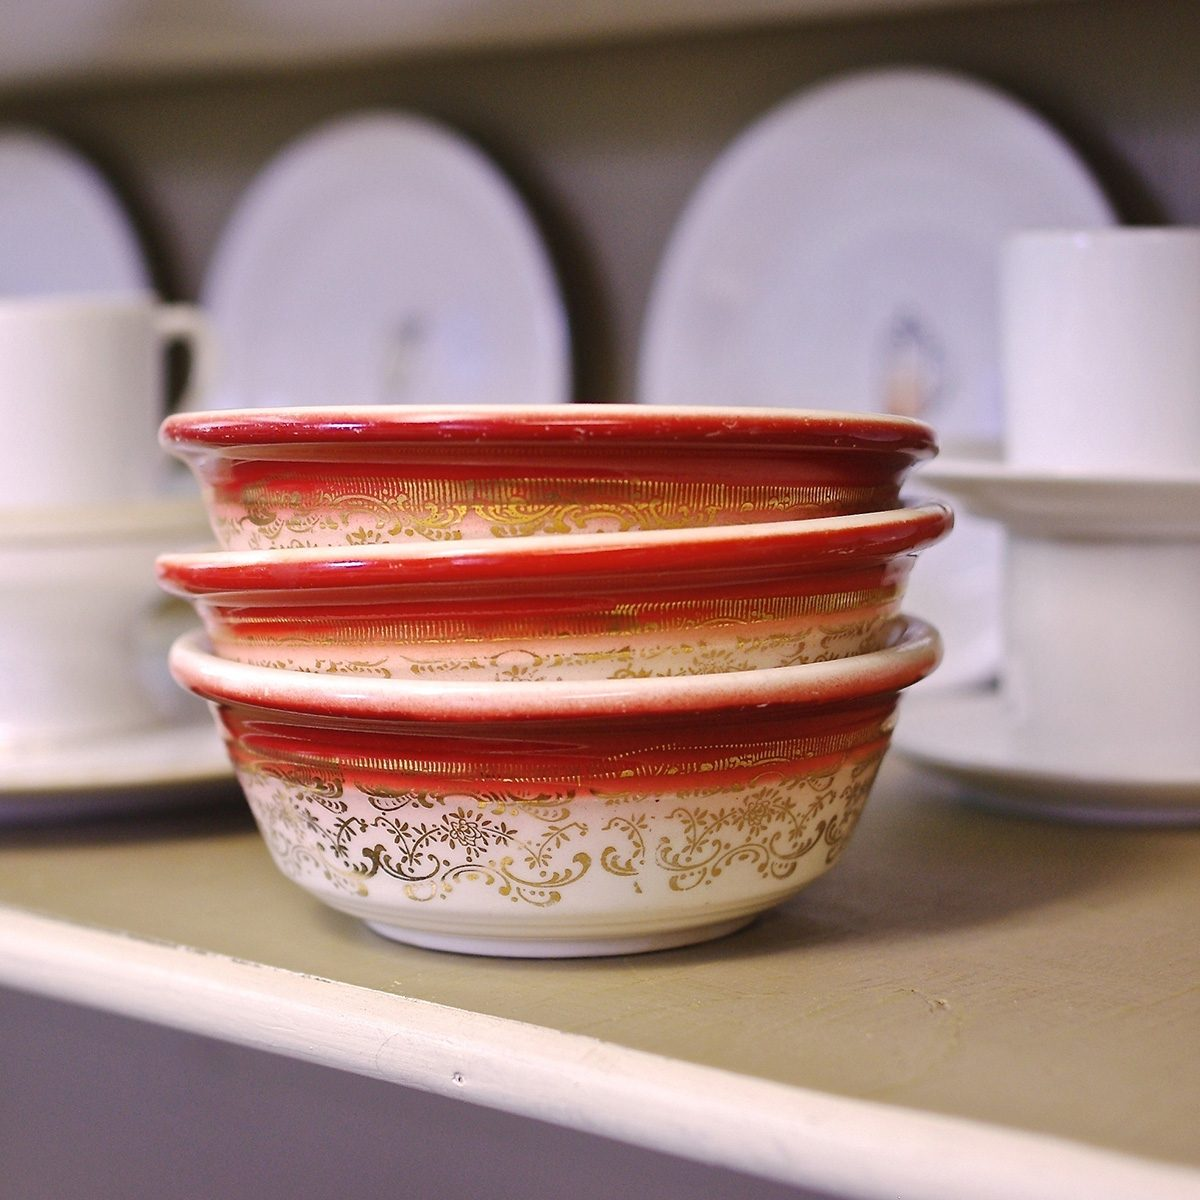 Vintage Stack of Bowls: close up of three orange & white bowls with a gold flowered pattern, stacked three high resting on a shelf amongst a backdrop of assorted white dishes at a thrift store.